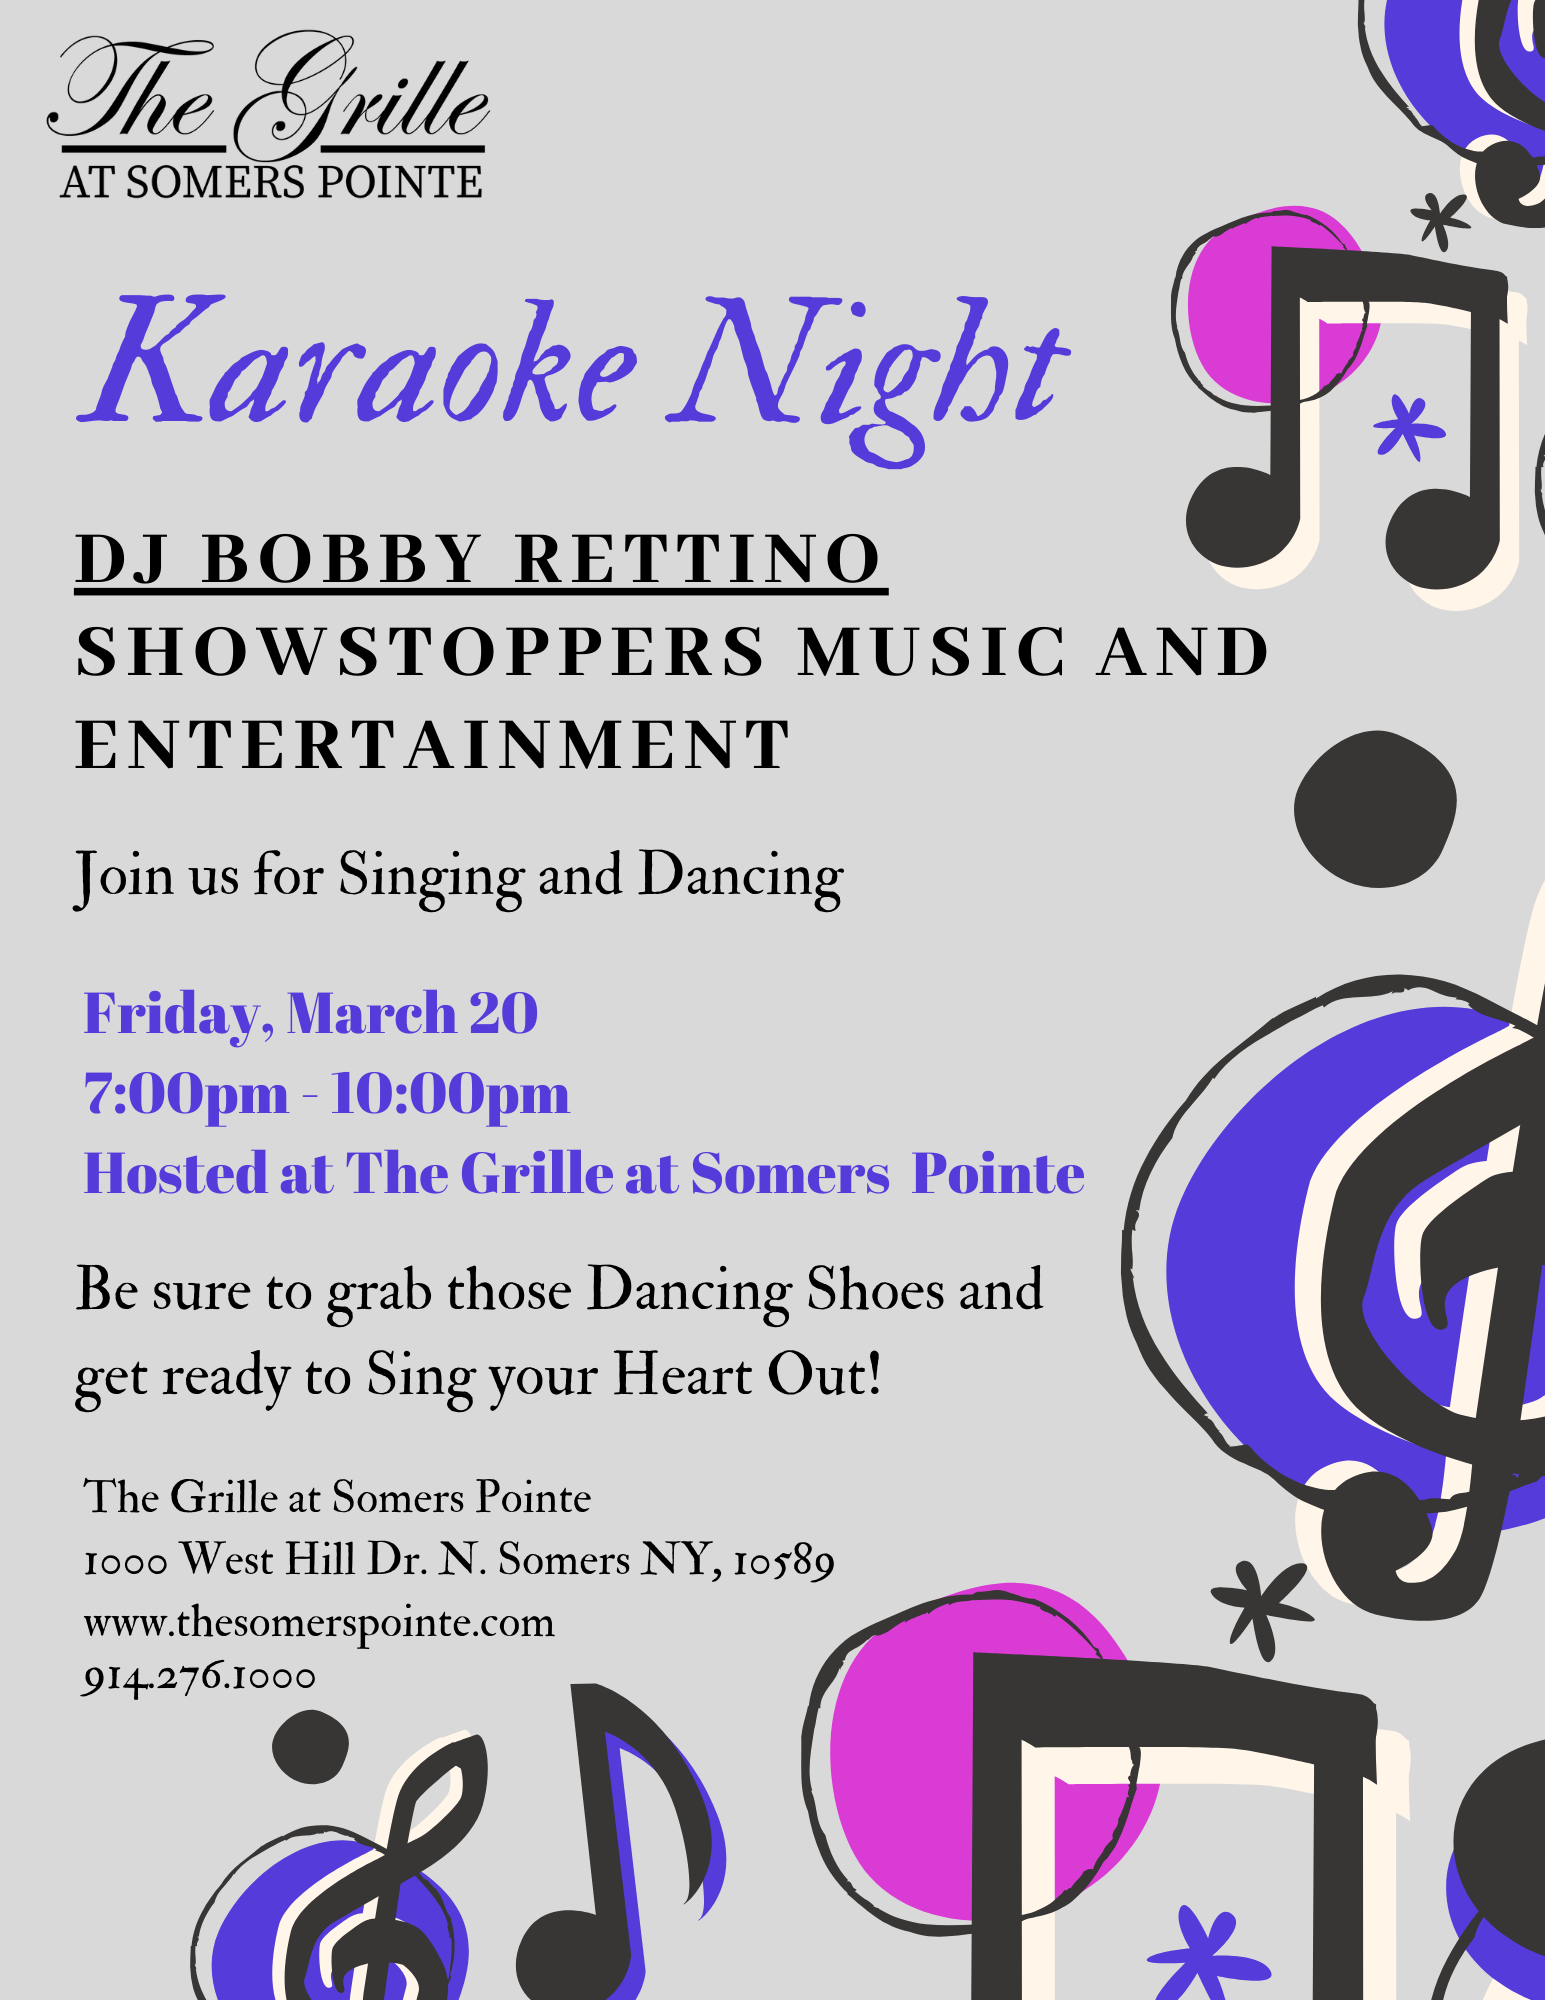 Karaoke Night Event Details- The Somers Pointe & The Grille at Somers Pointe